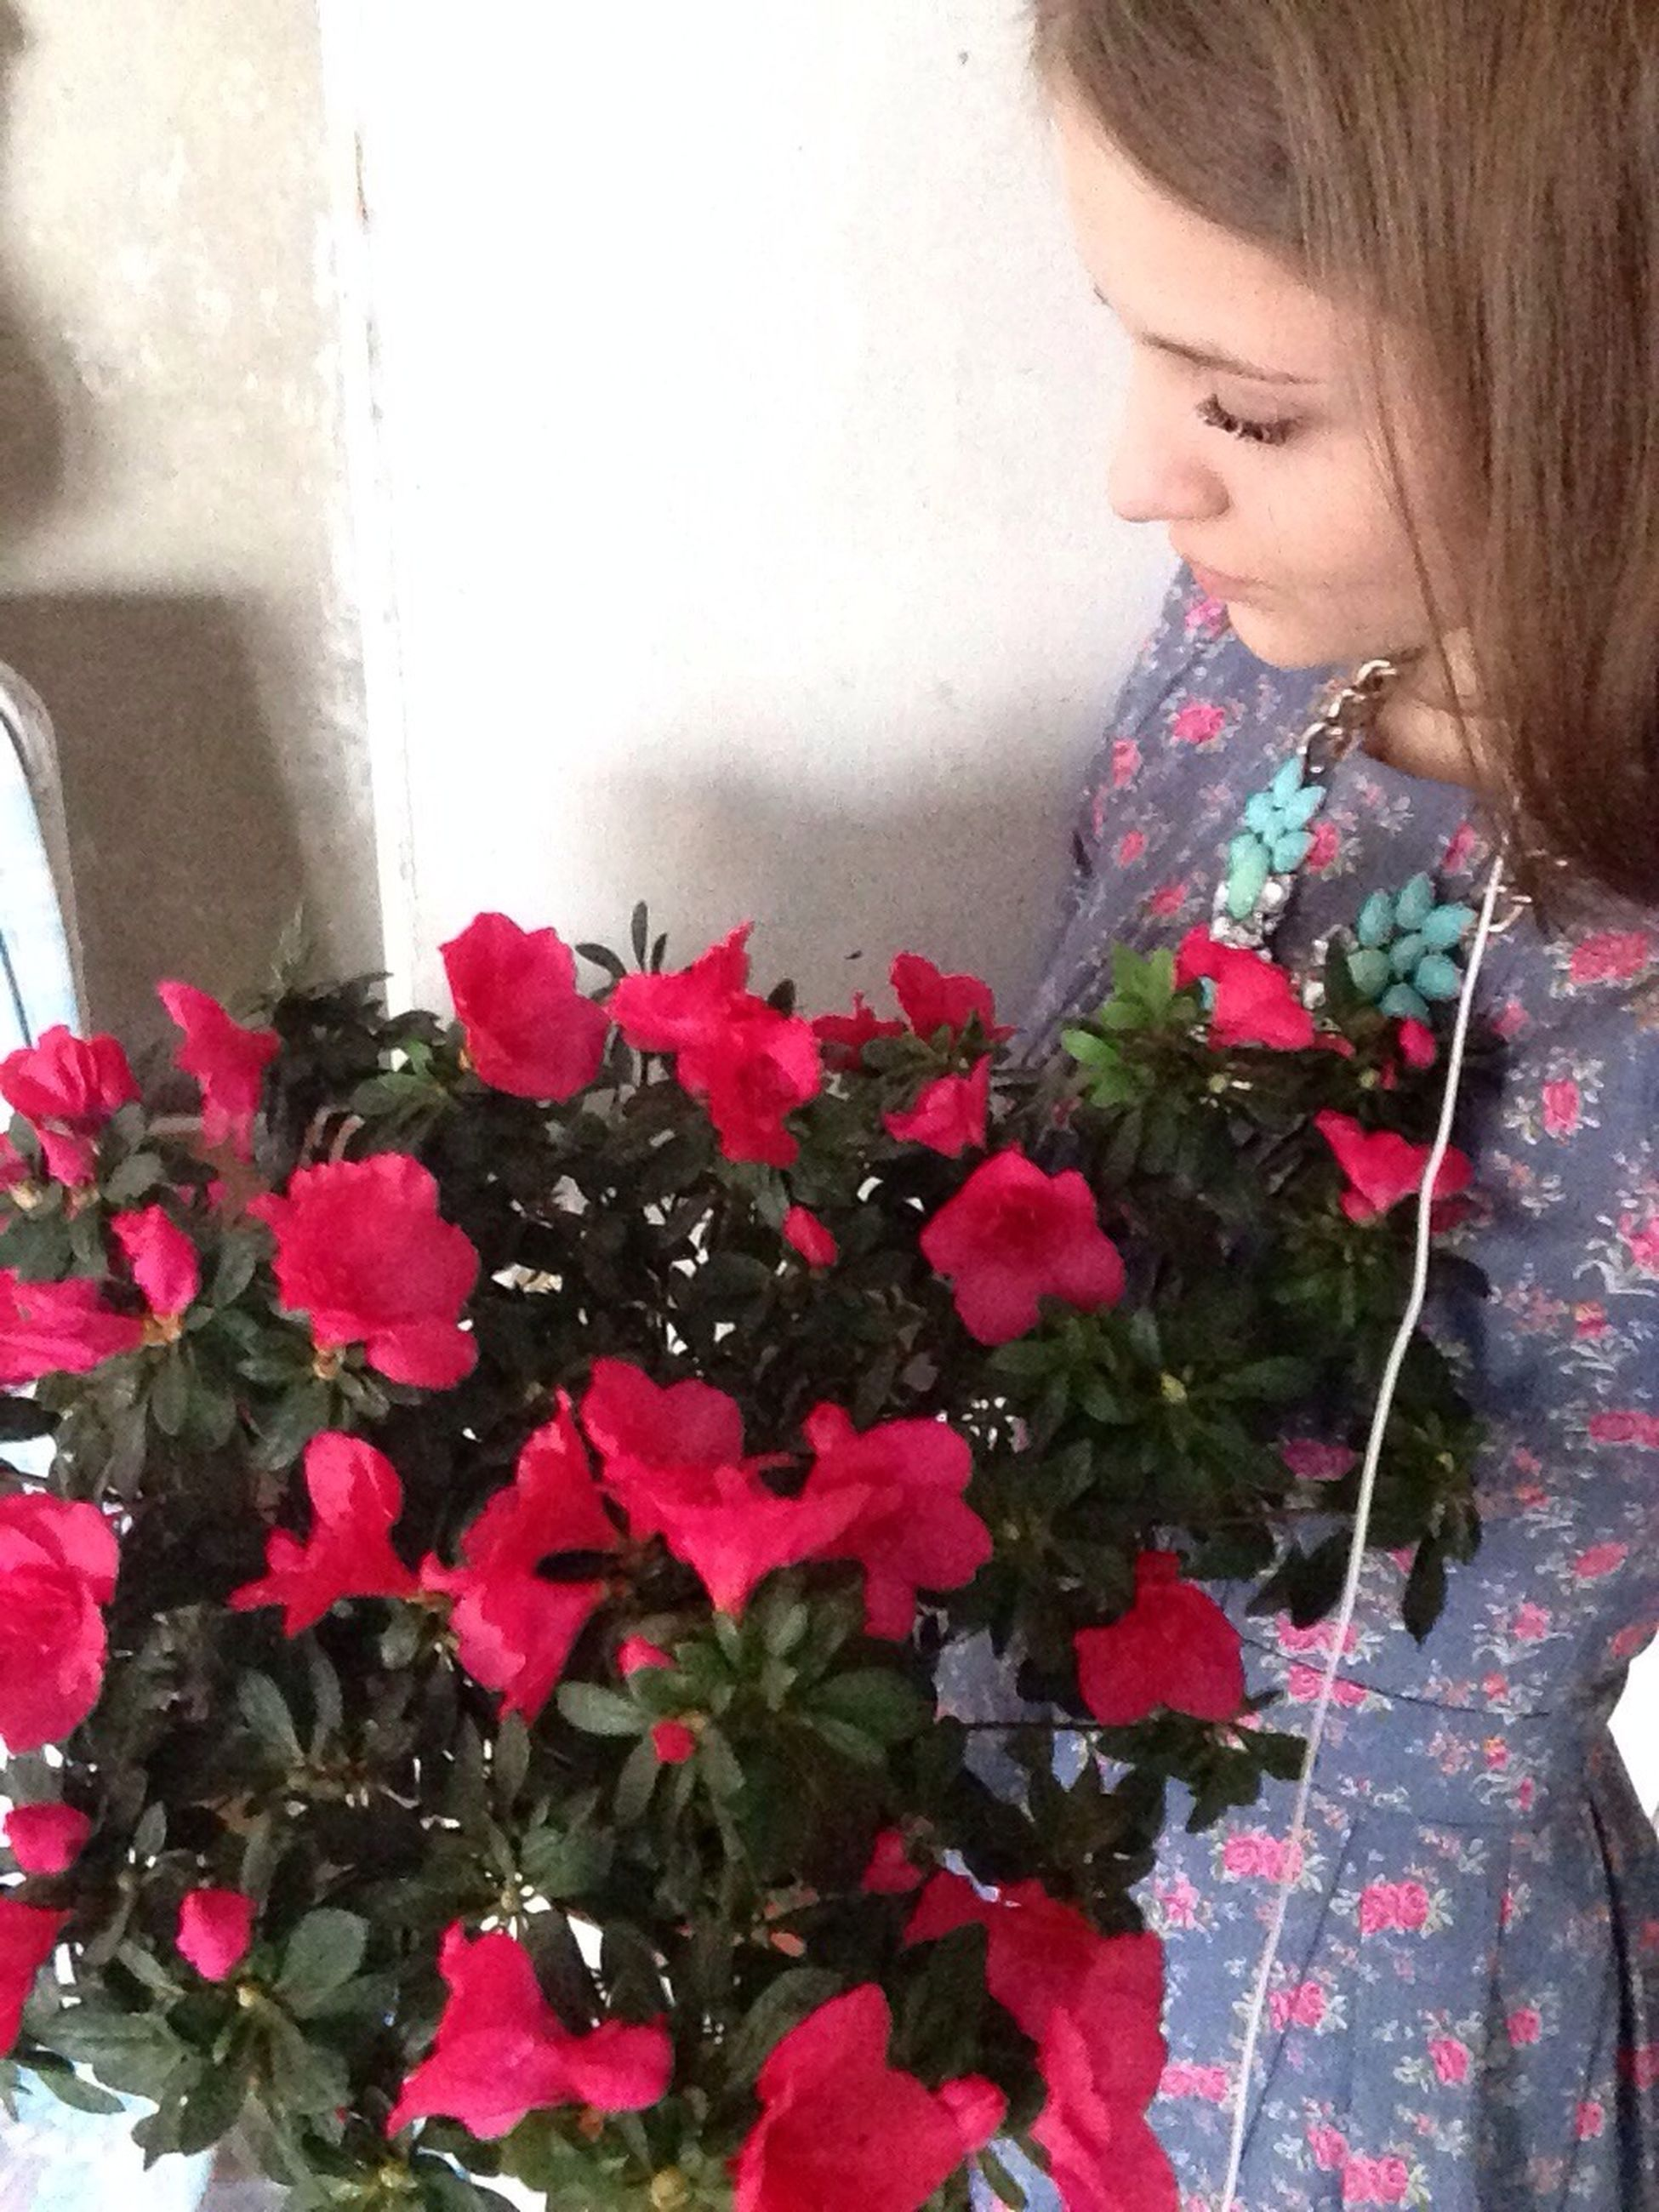 flower, lifestyles, pink color, person, leisure activity, casual clothing, indoors, holding, childhood, red, standing, fragility, freshness, elementary age, wall - building feature, girls, front view, day